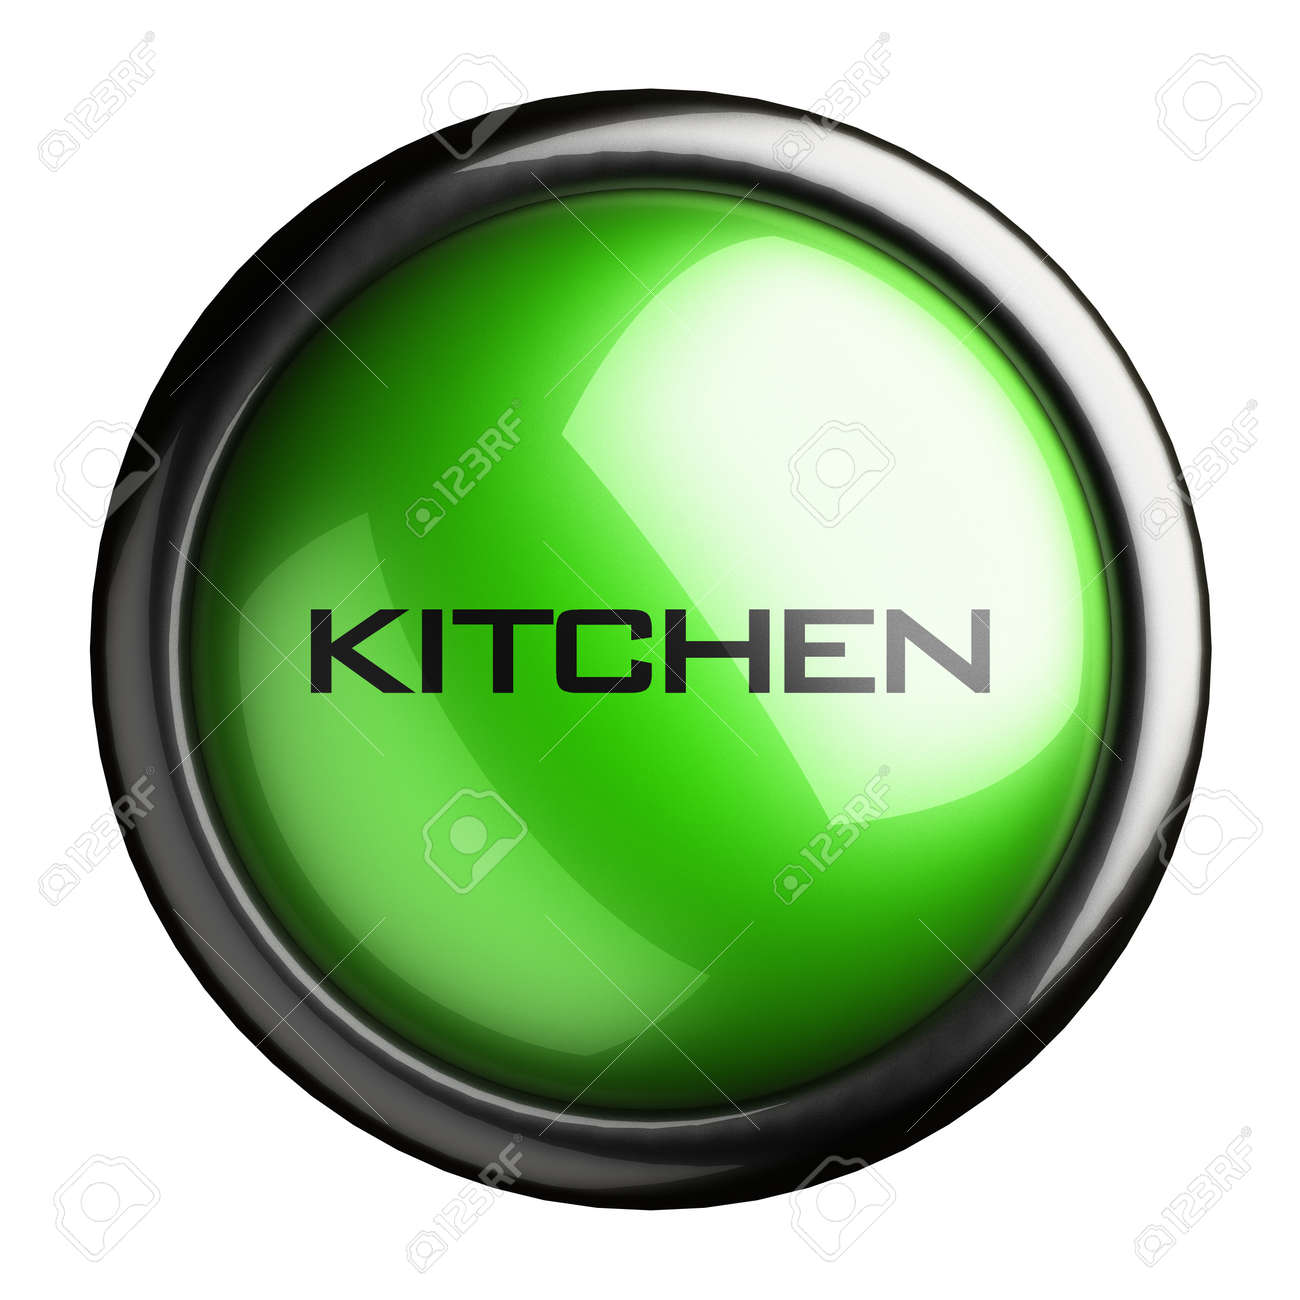 Word on the button Stock Photo - 16399663